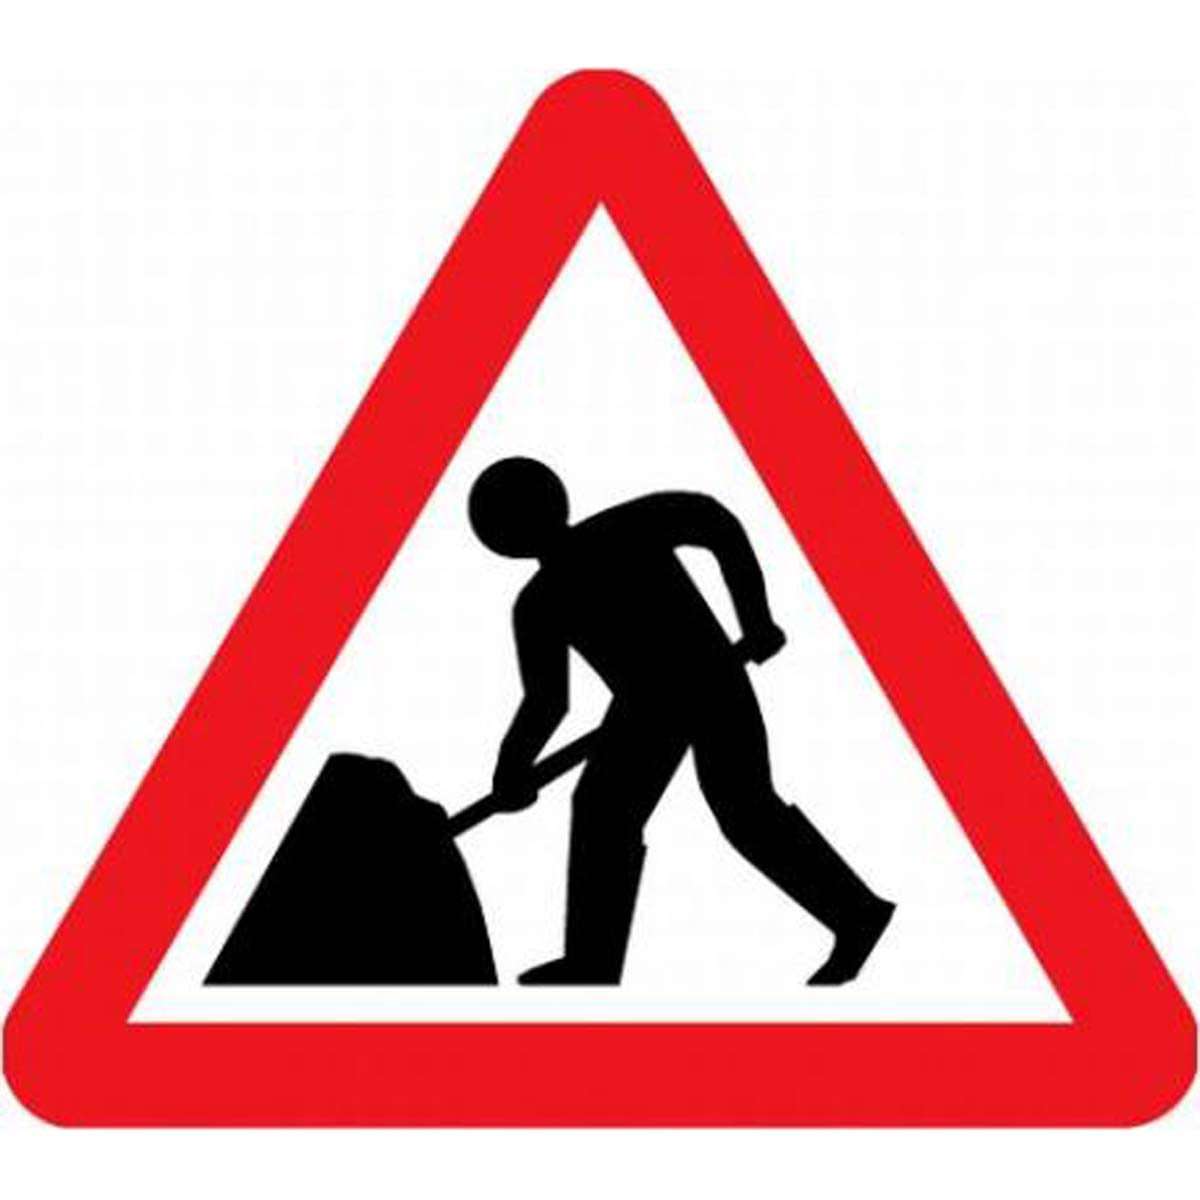 Roadworks will affect the A34